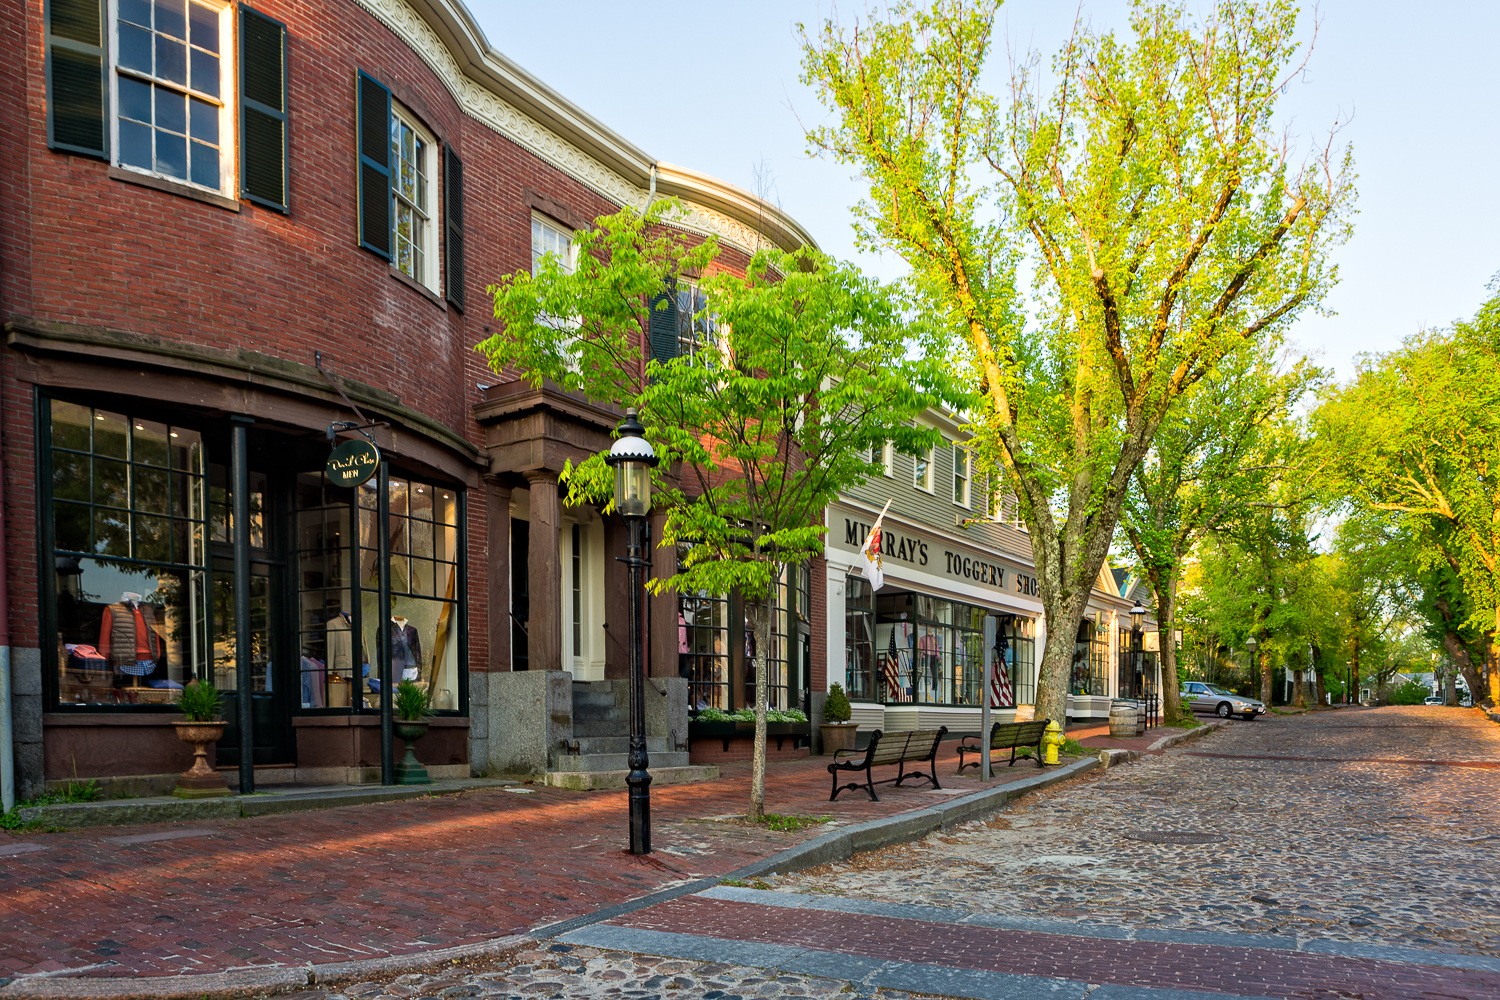 Shopping on Main Street in Nantucket before the crowds.